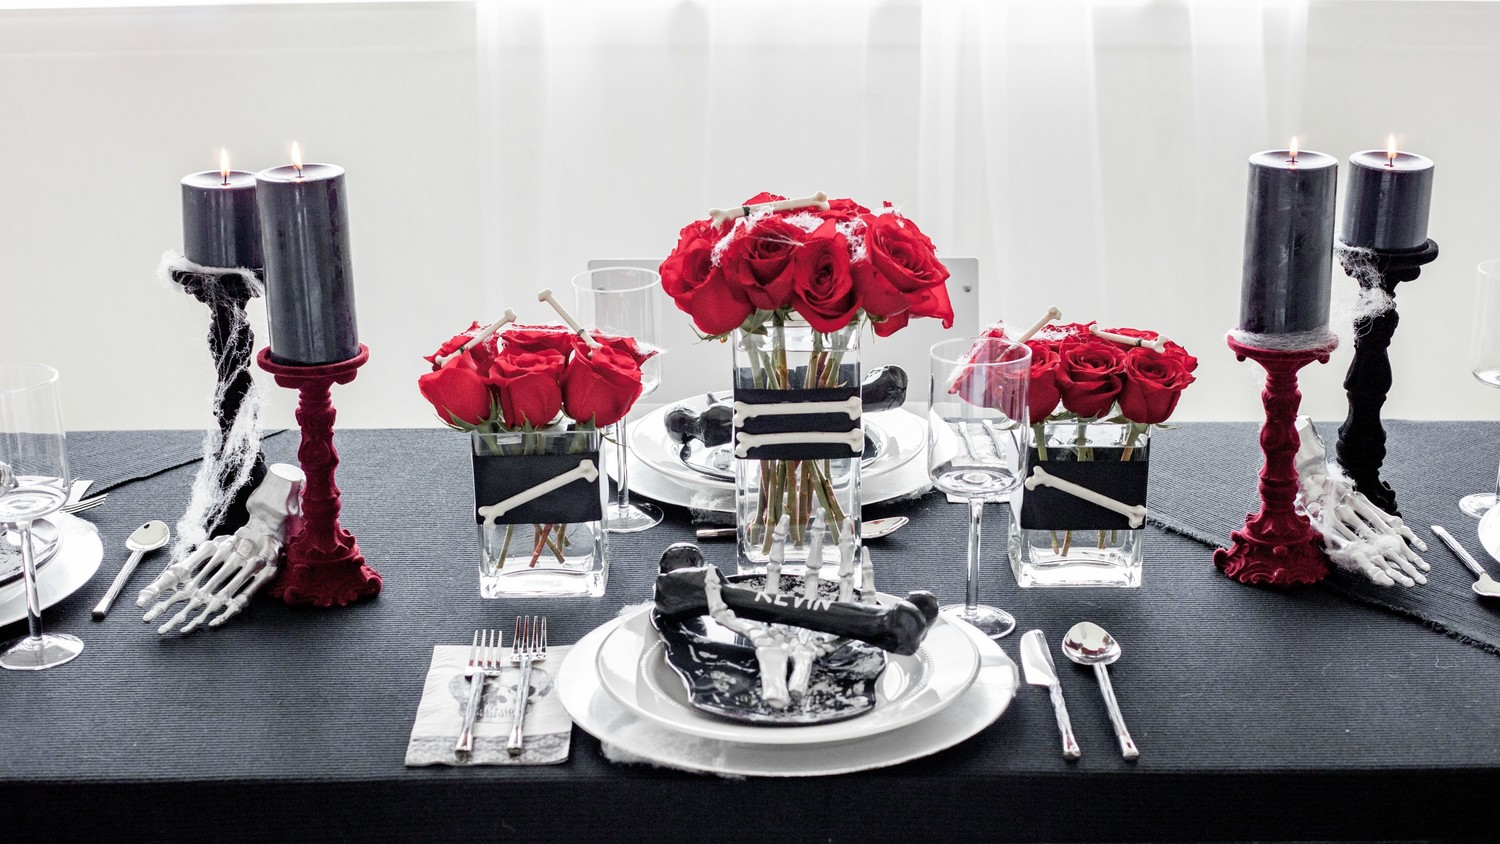 Rose-and-Bone Halloween Centerpiece